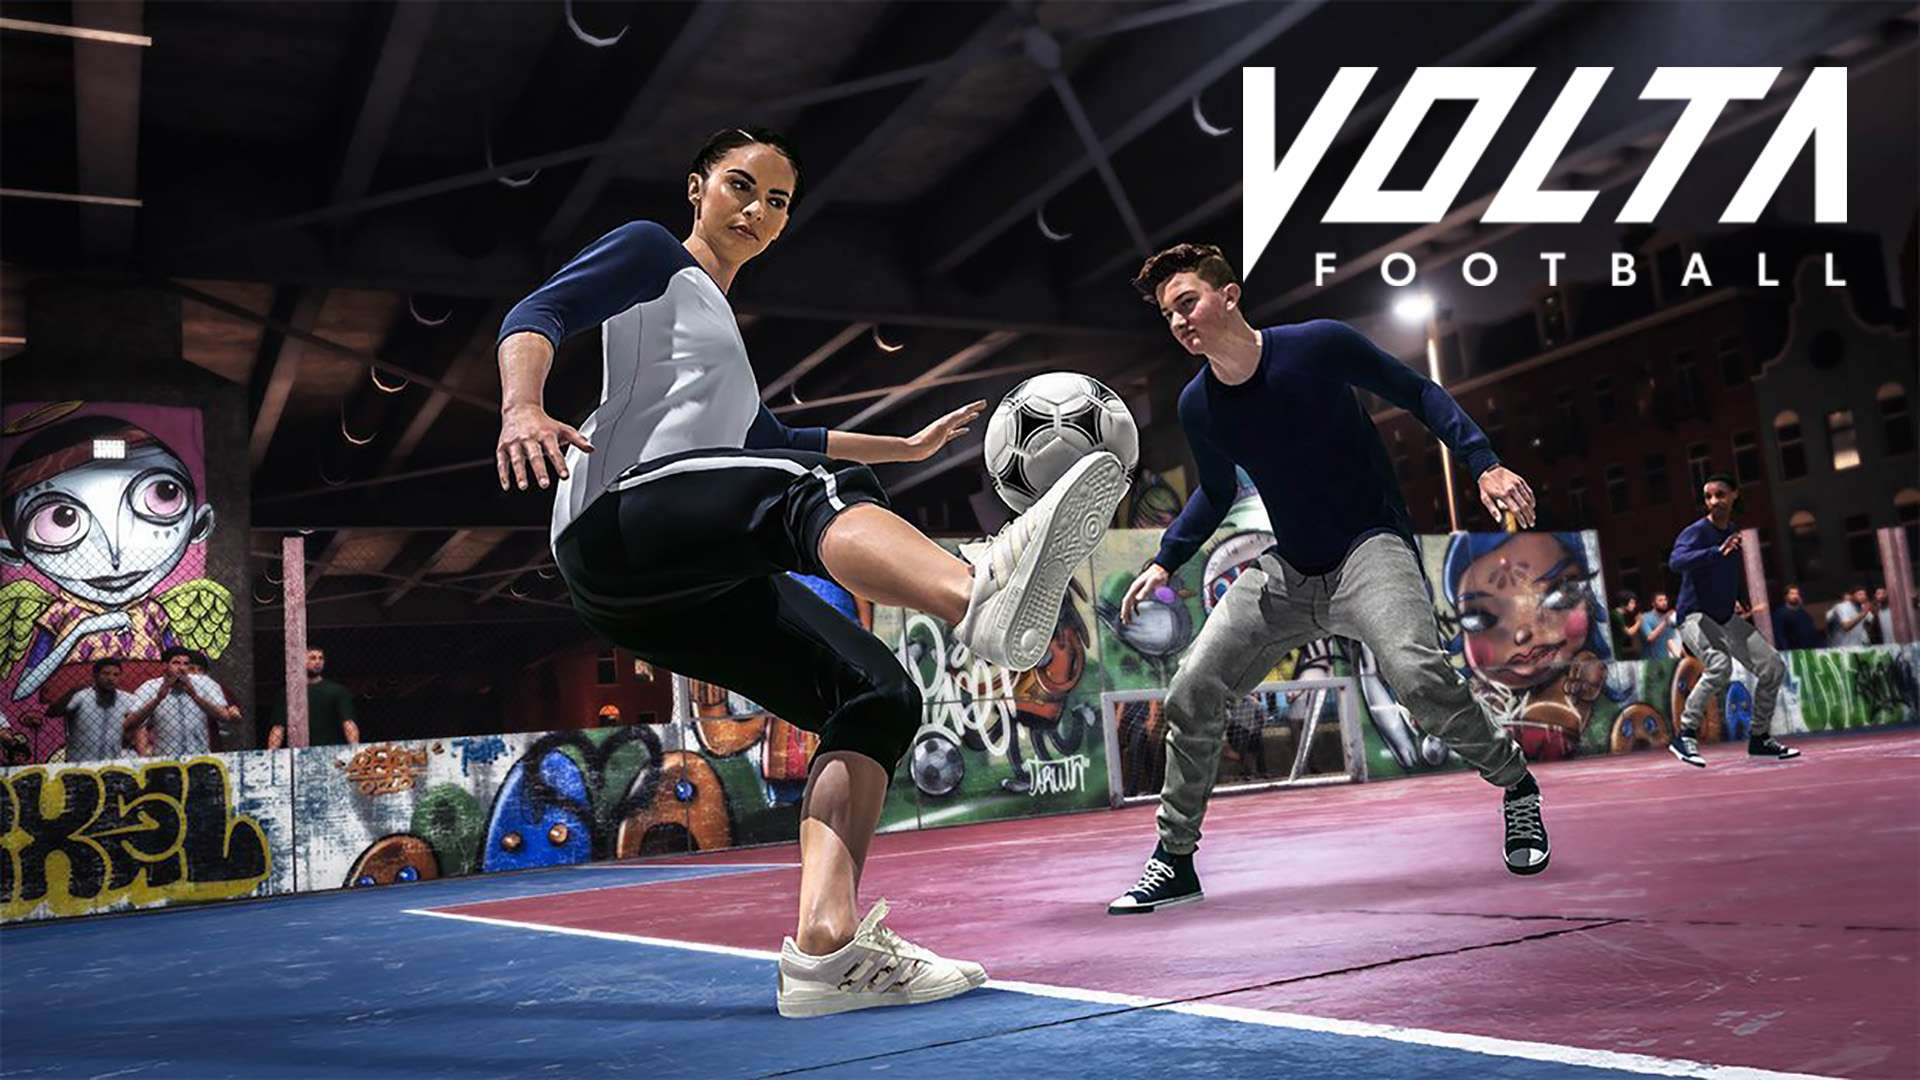 Image result for Ten things we learned playing Volta in FIFA 20